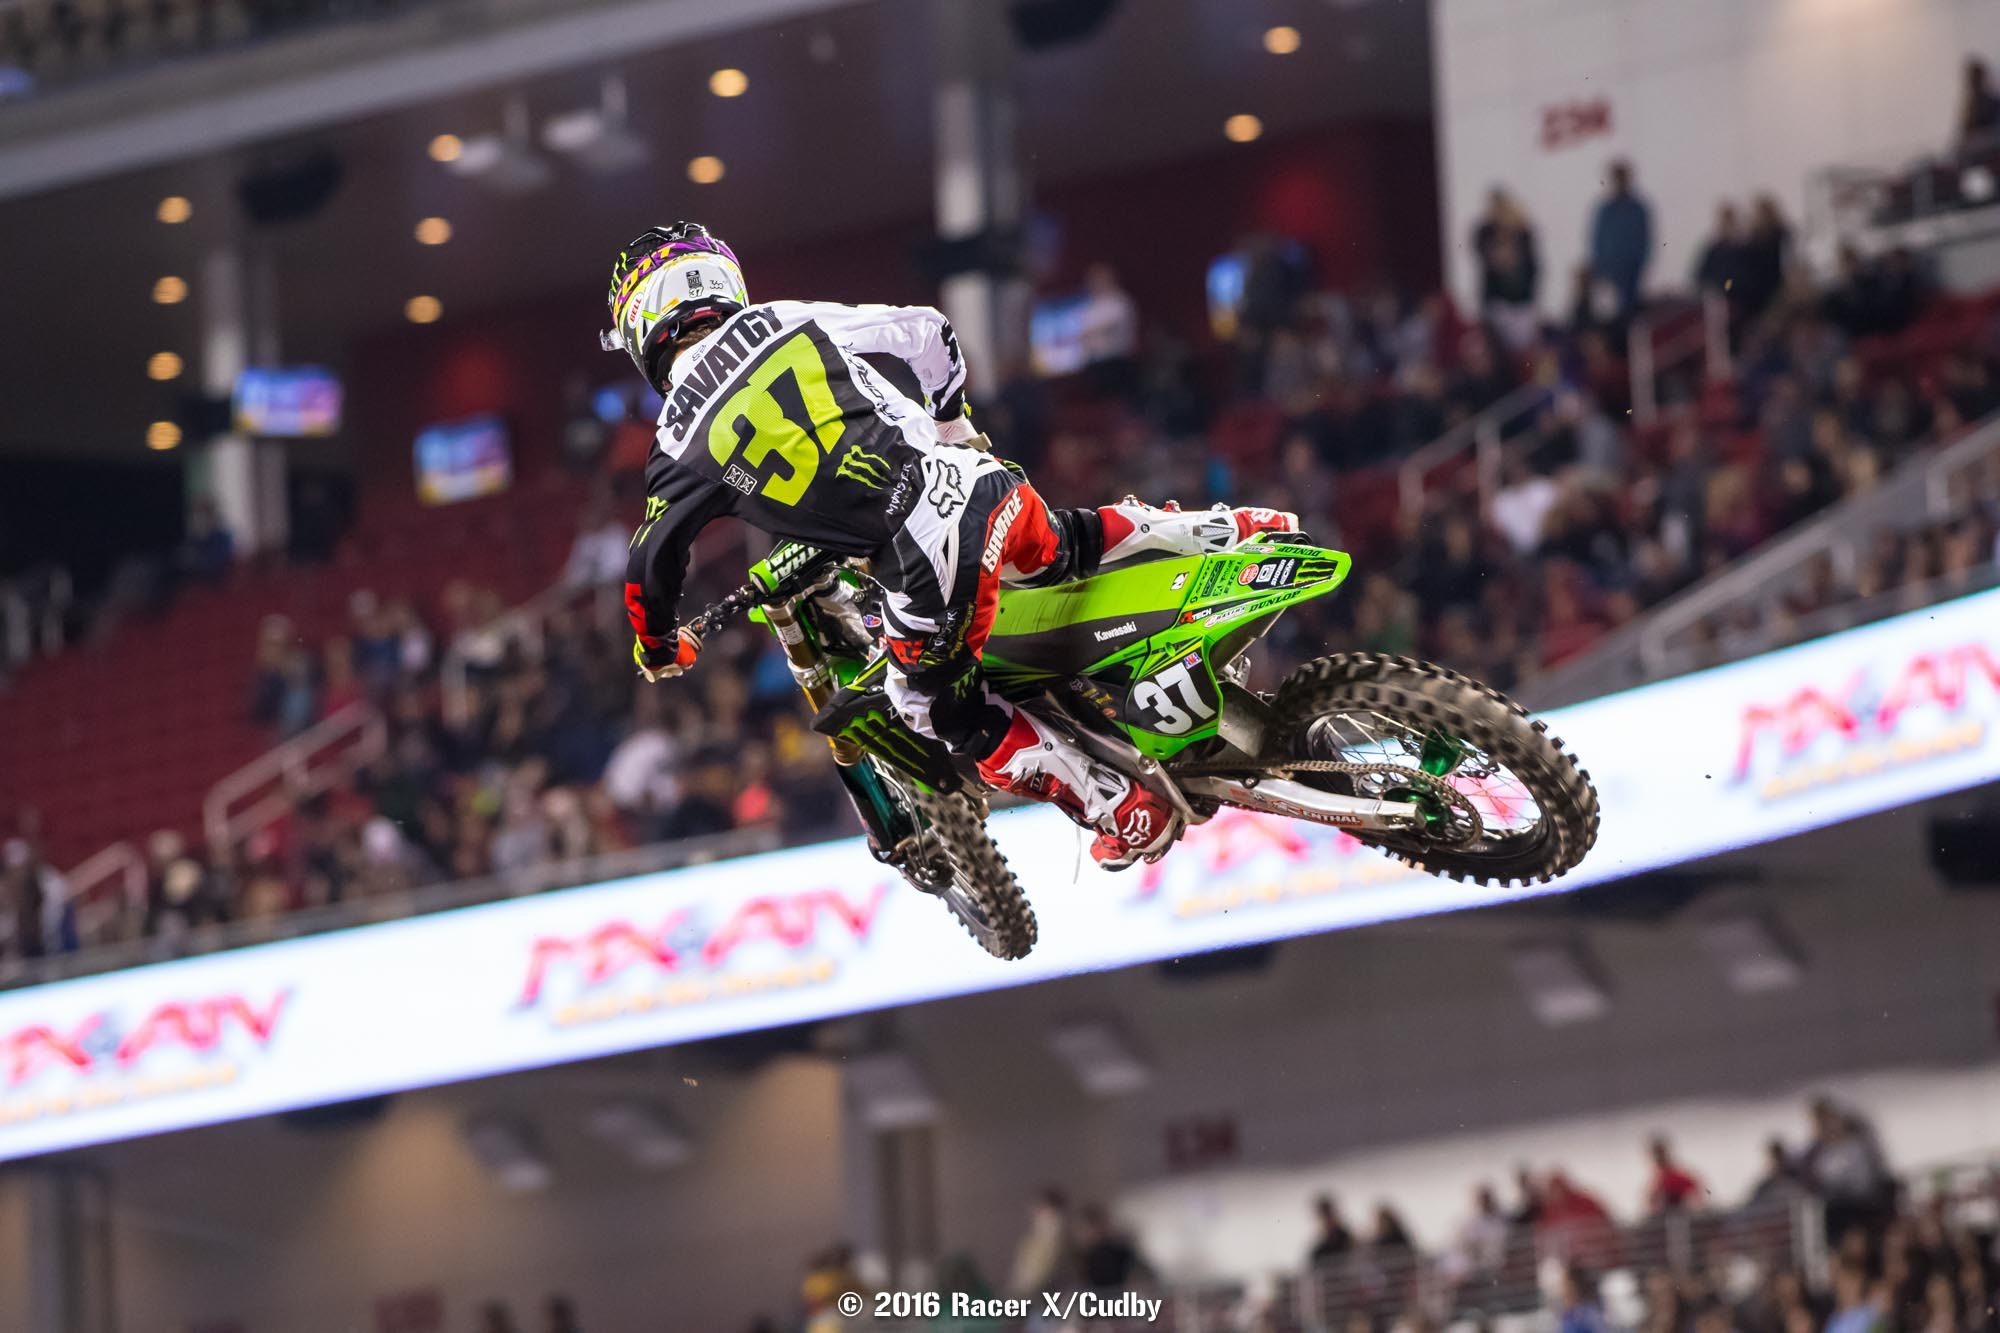 Joey Savatgy has one race left to overcome the sixteen-point gap between him and Cooper Webb.